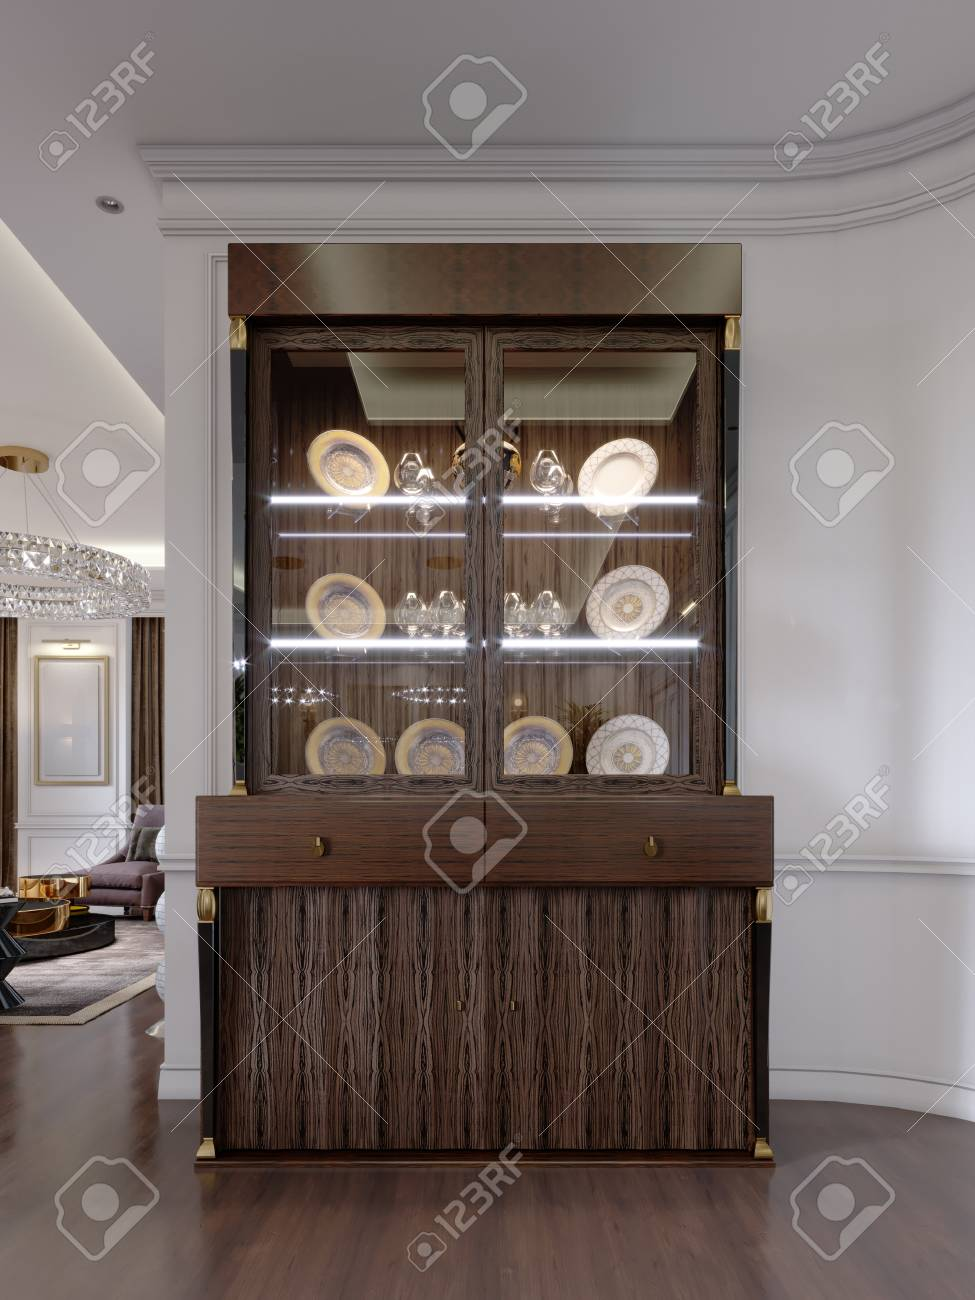 Glass Cabinet with dishes on the shelves and lighting in a modern..